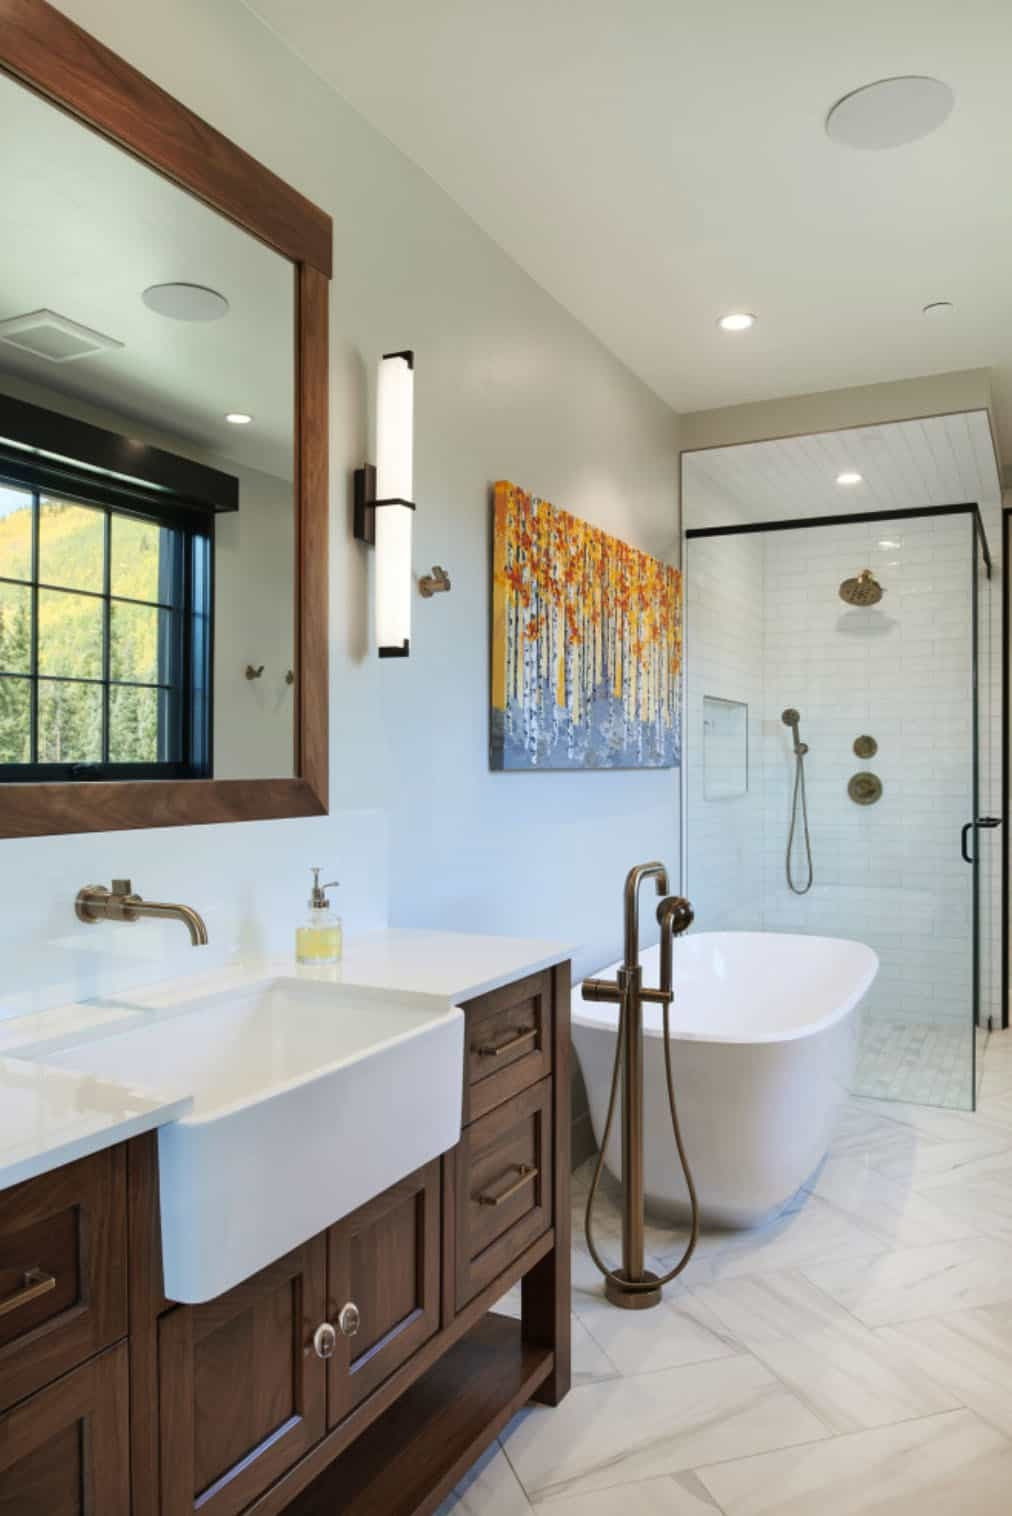 The bathrooms are modern and rustic, with wooden furniture and dark metal fixtures